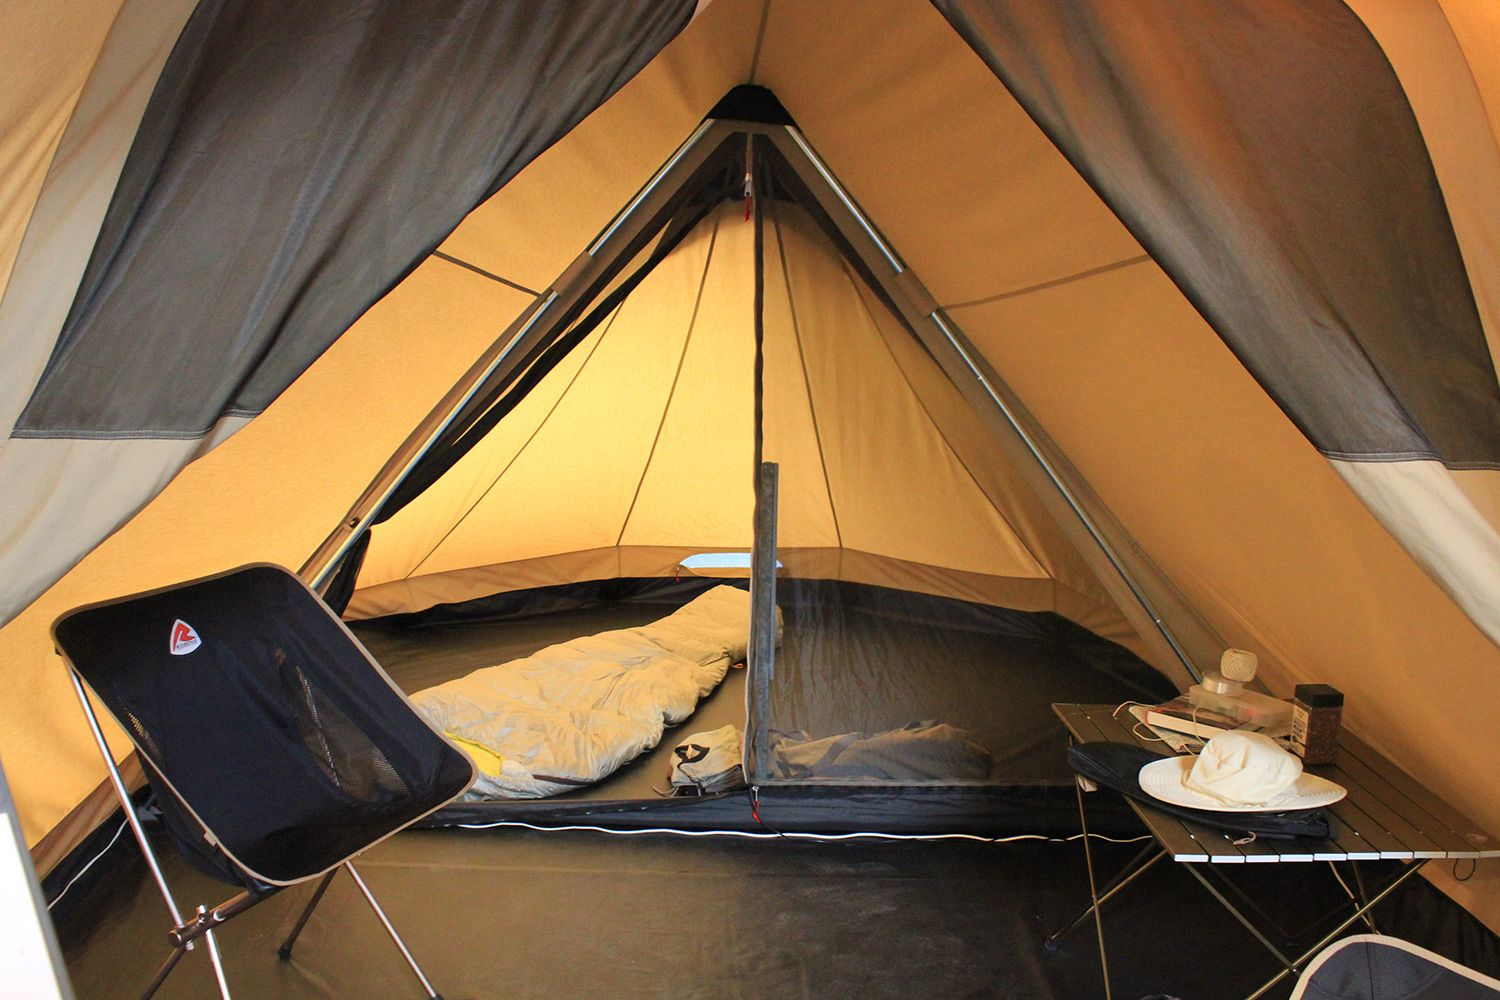 Robens Trapper Canvas Tent new for 2018 | CWS ? Tents | Pinterest | Tents and C&ing & Robens Trapper Canvas Tent new for 2018 | CWS ? Tents ...